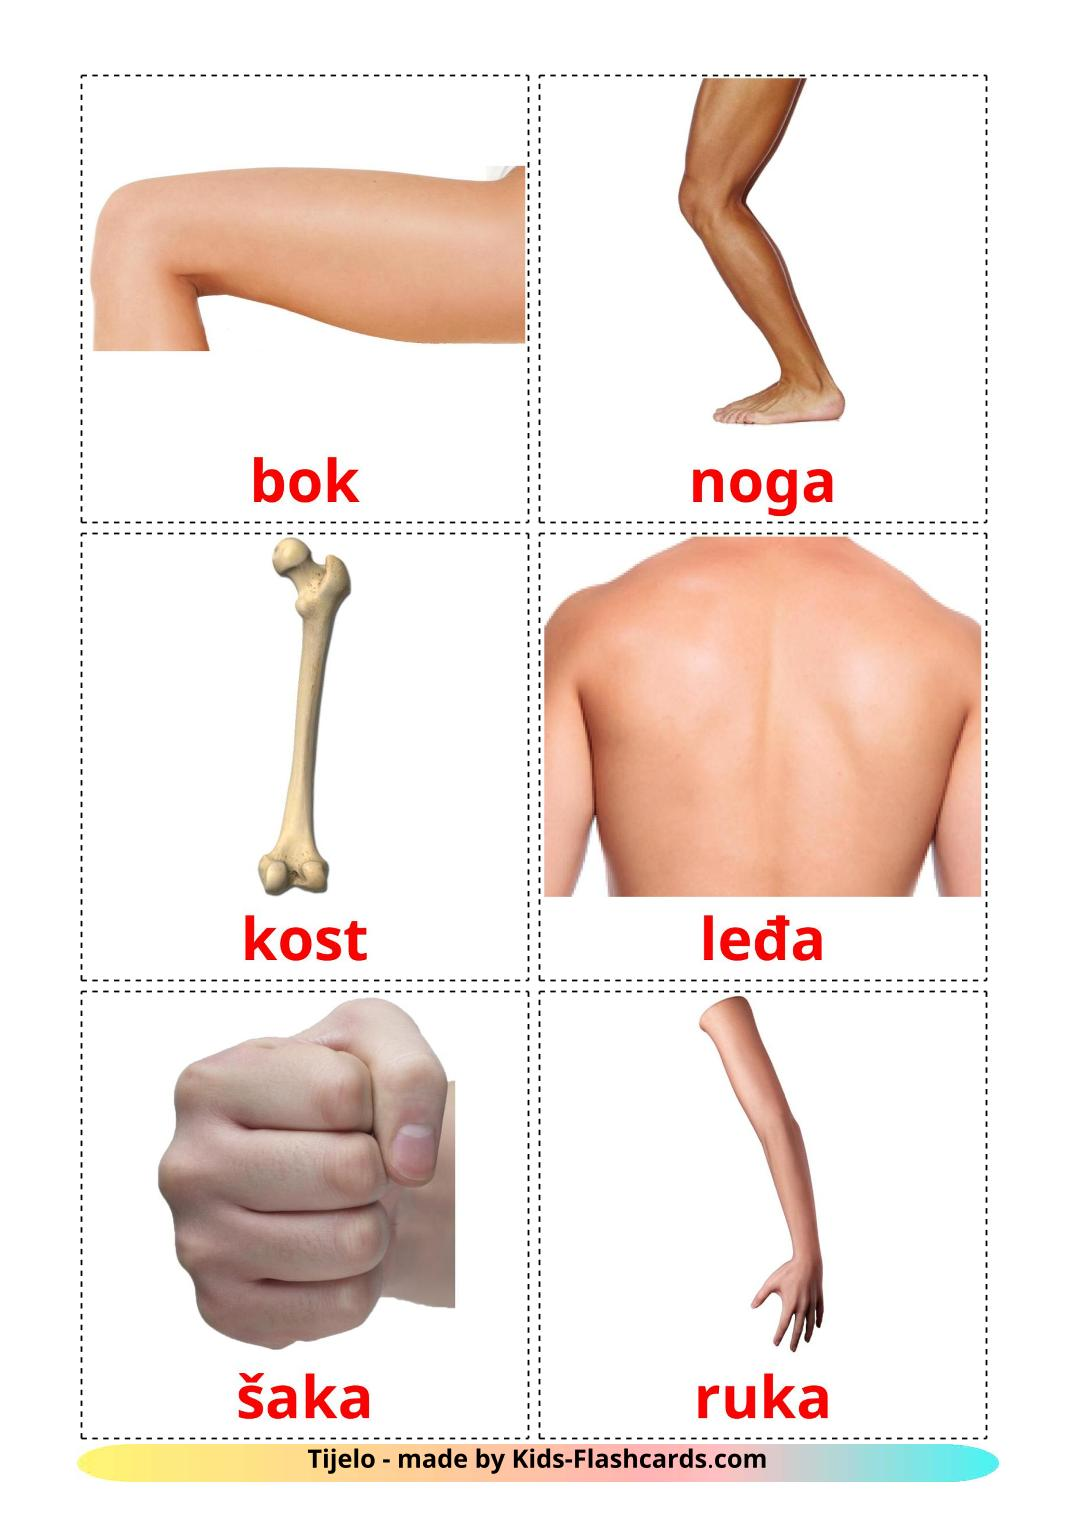 Body Parts - 26 Free Printable croatian Flashcards